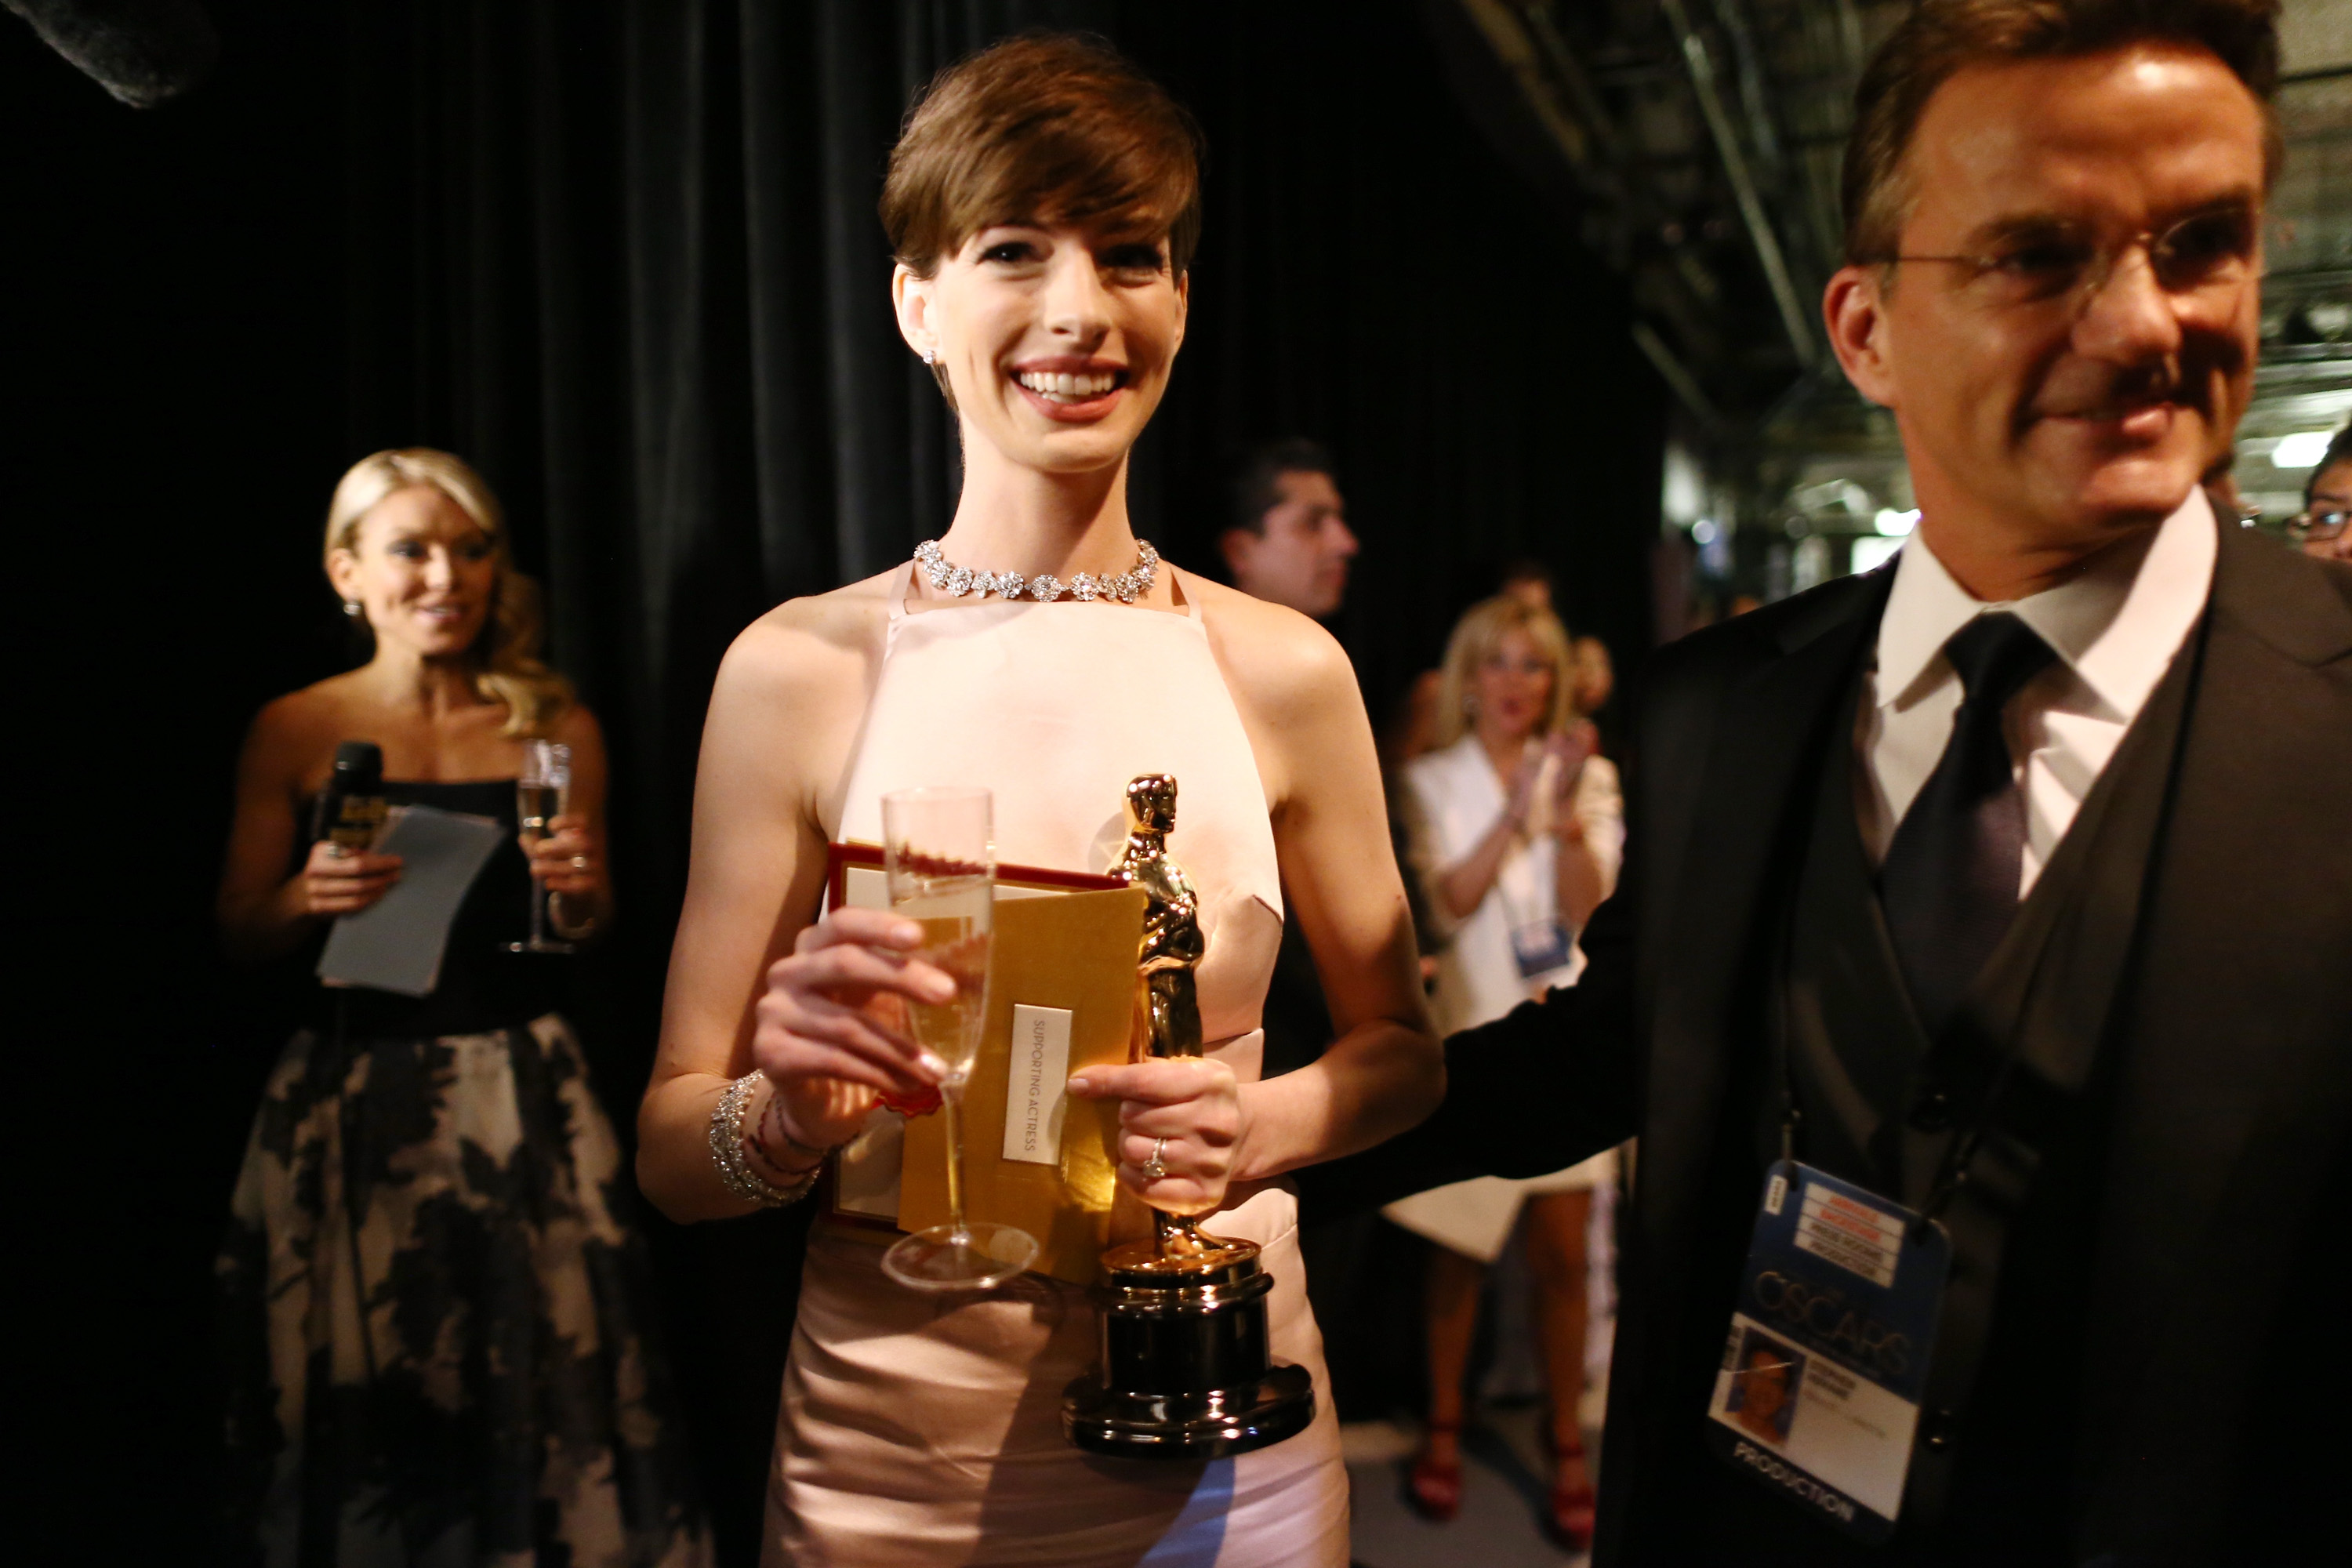 Anne Hathaway backstage at the 2013 Oscars.